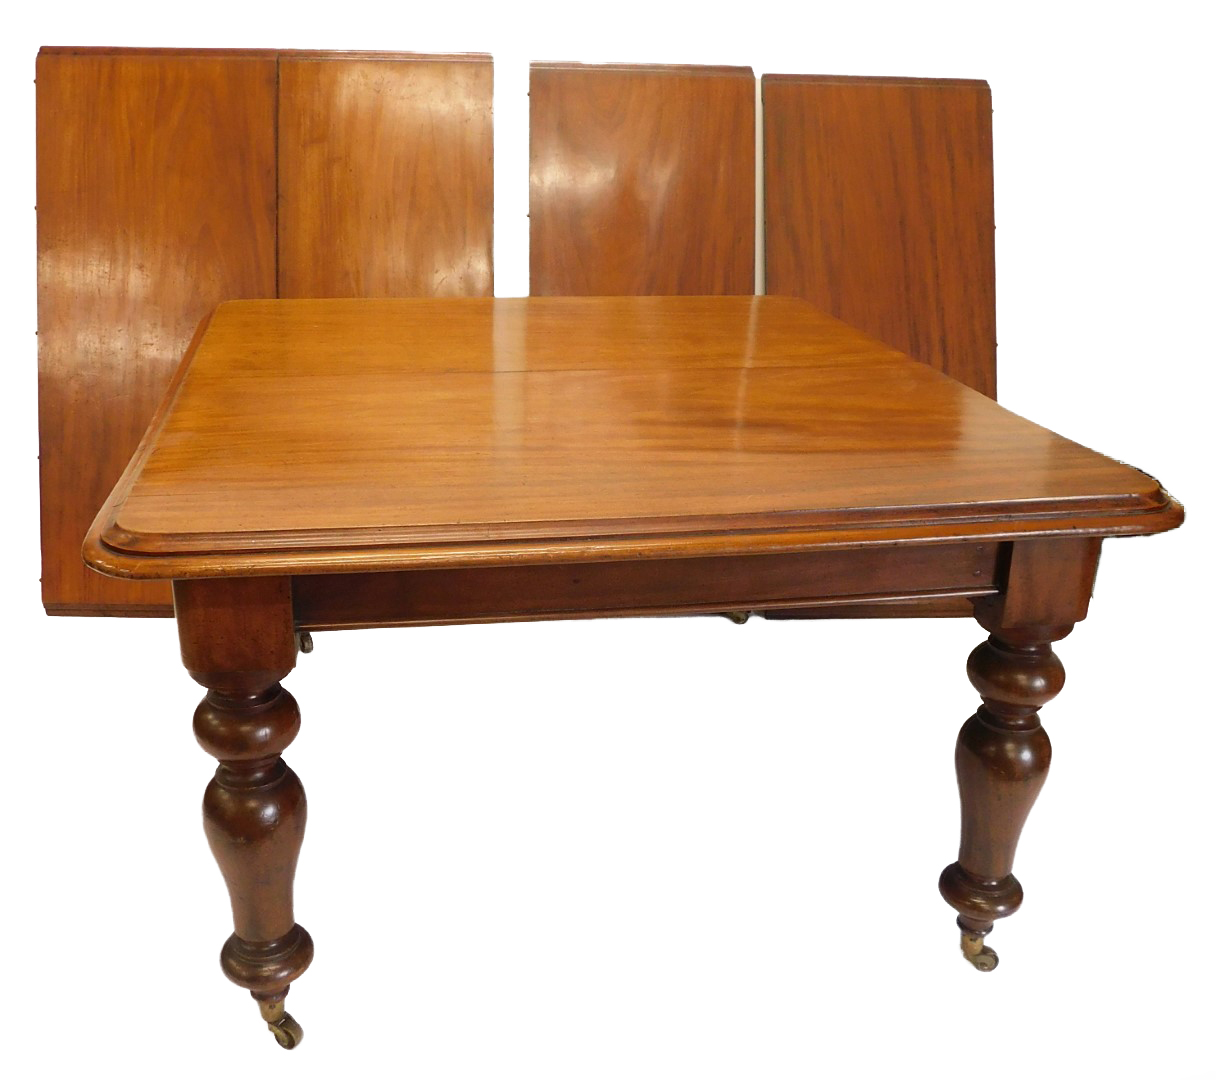 A Victorian mahogany extending dining table, the rectangular top with a moulded edge on turned taper